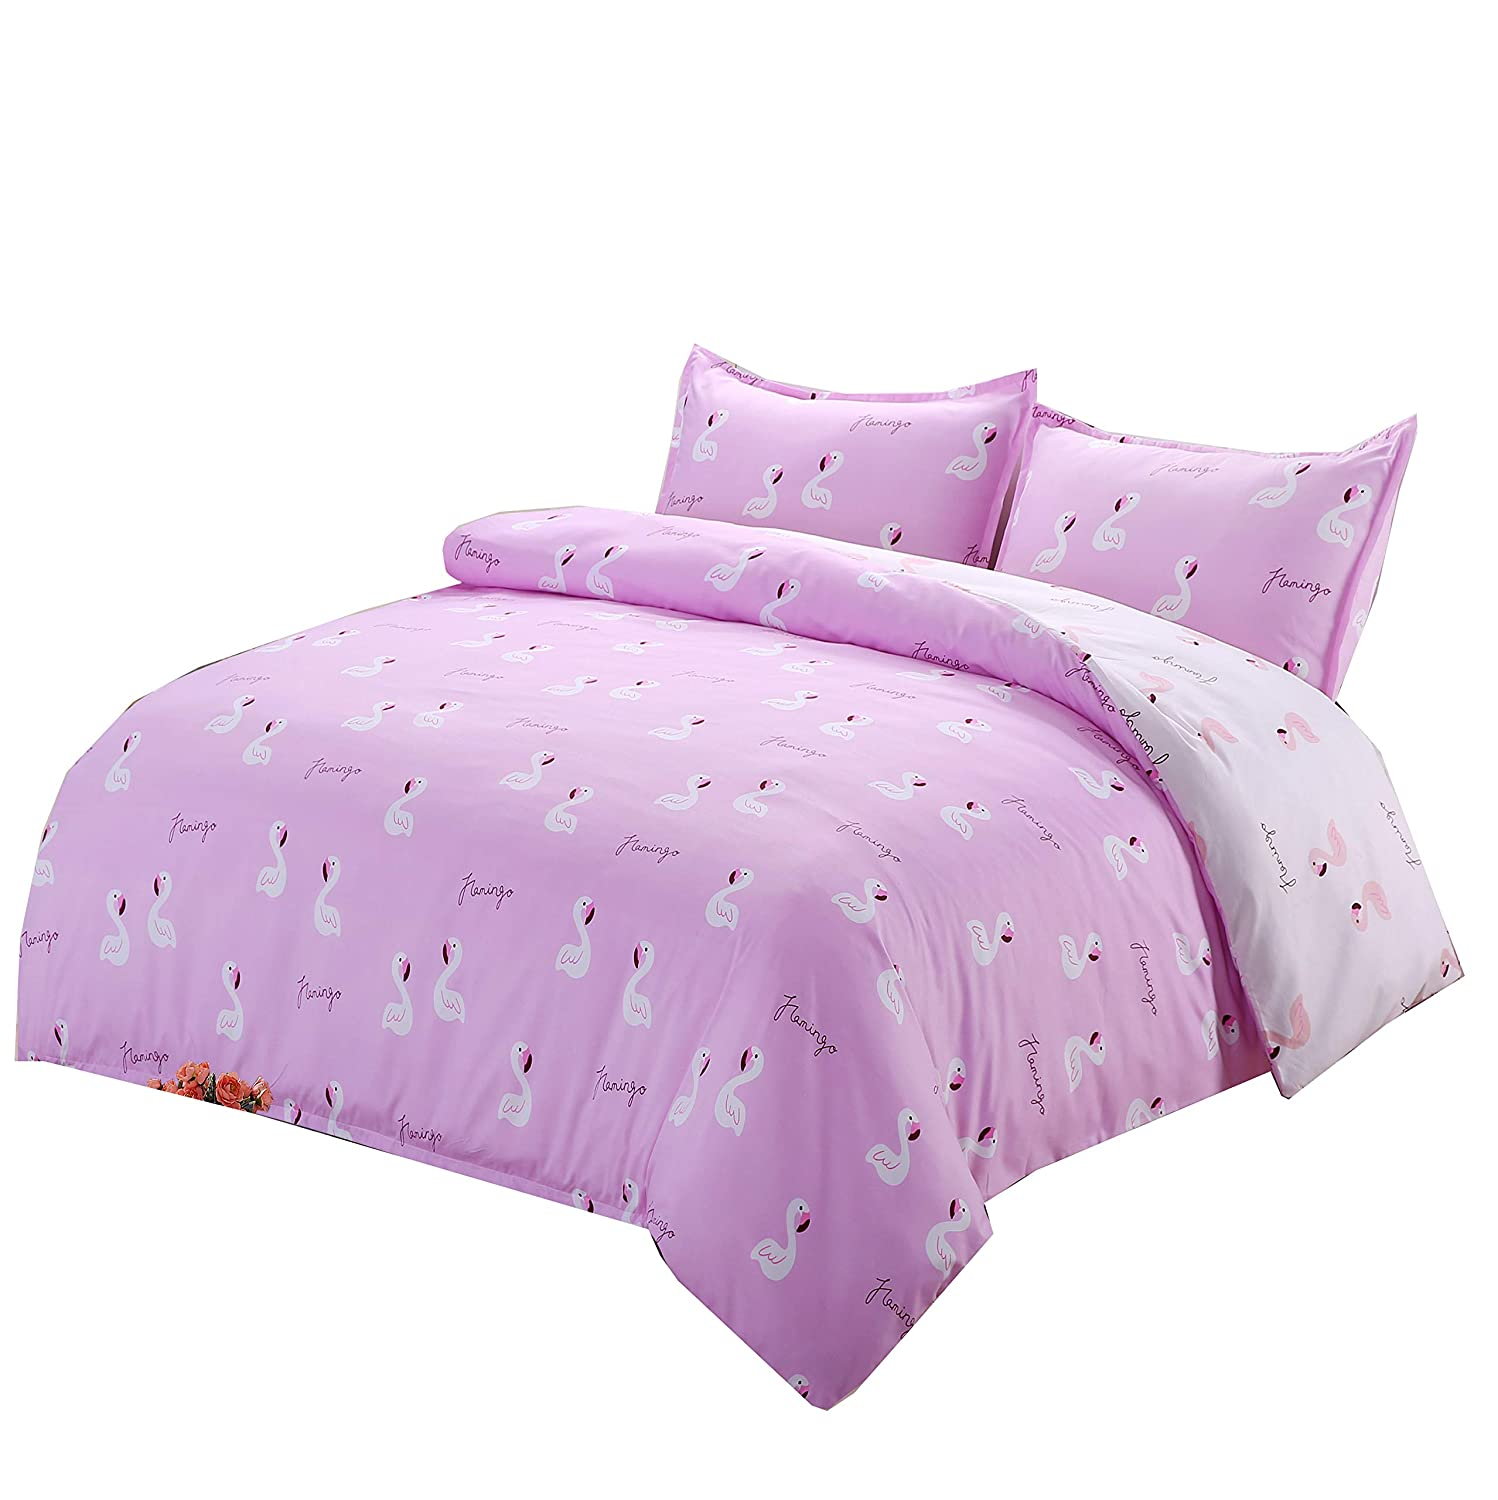 Moliy Duvet Cover Set Breathable Reversible Pink Animals Swan Ultra Soft Microfiber Bedding, Full/Queen (90